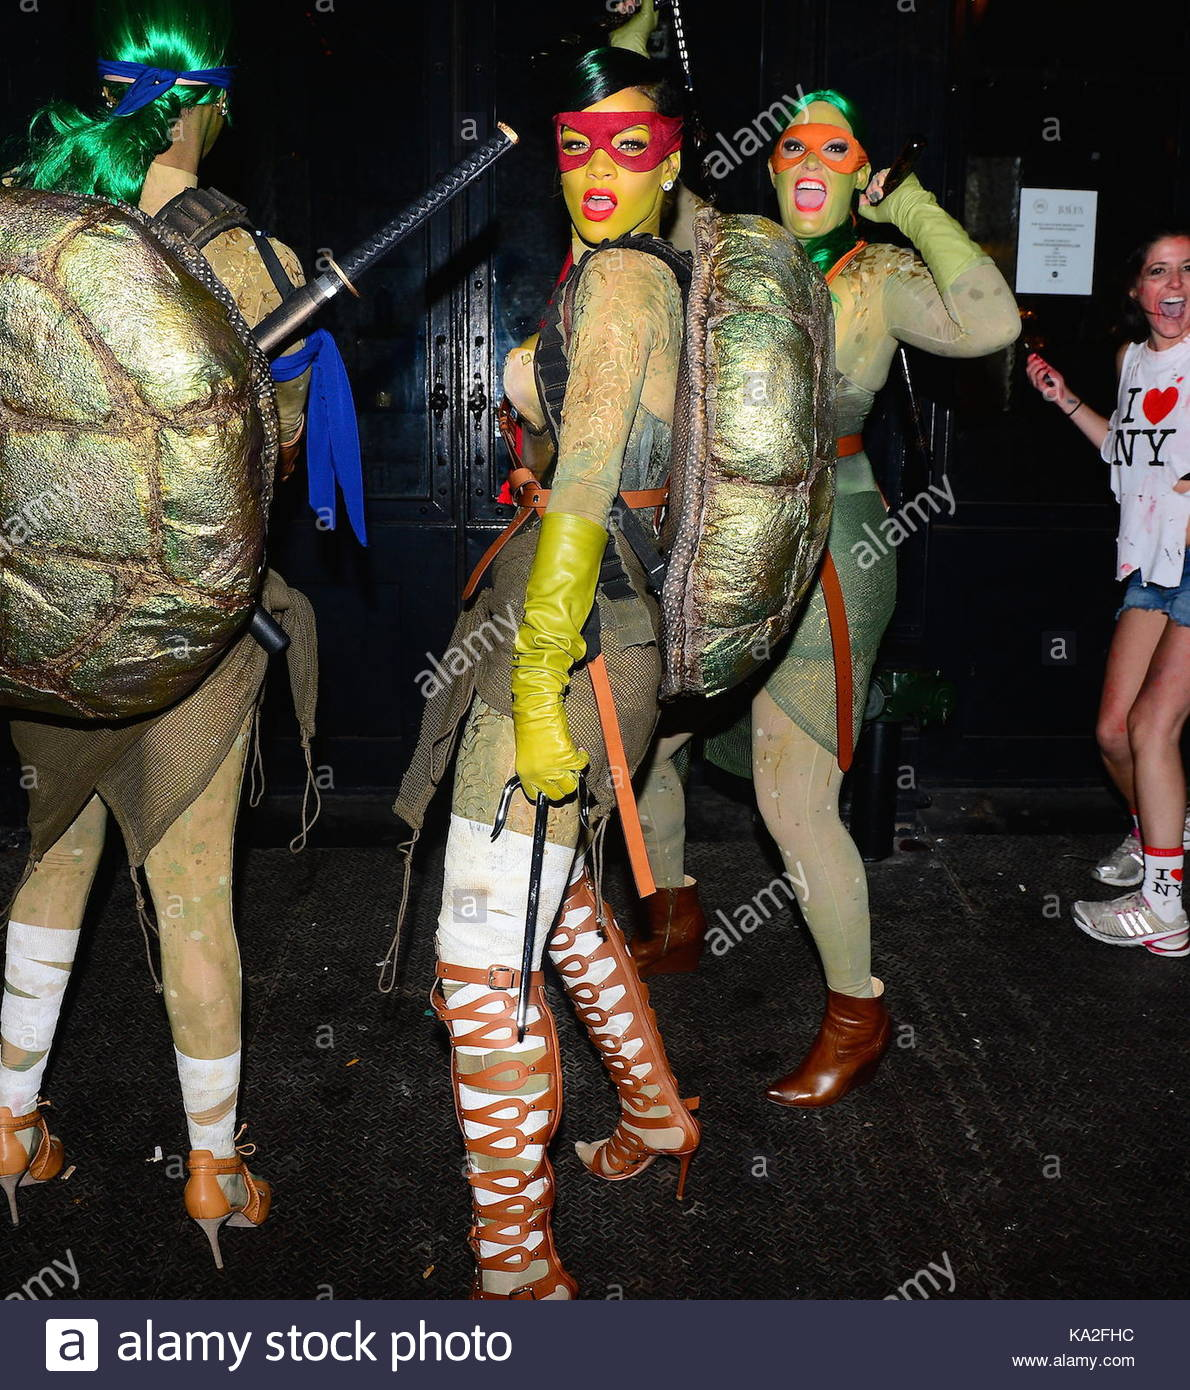 rihanna. rihanna was spotted celebrating halloween in nyc with a